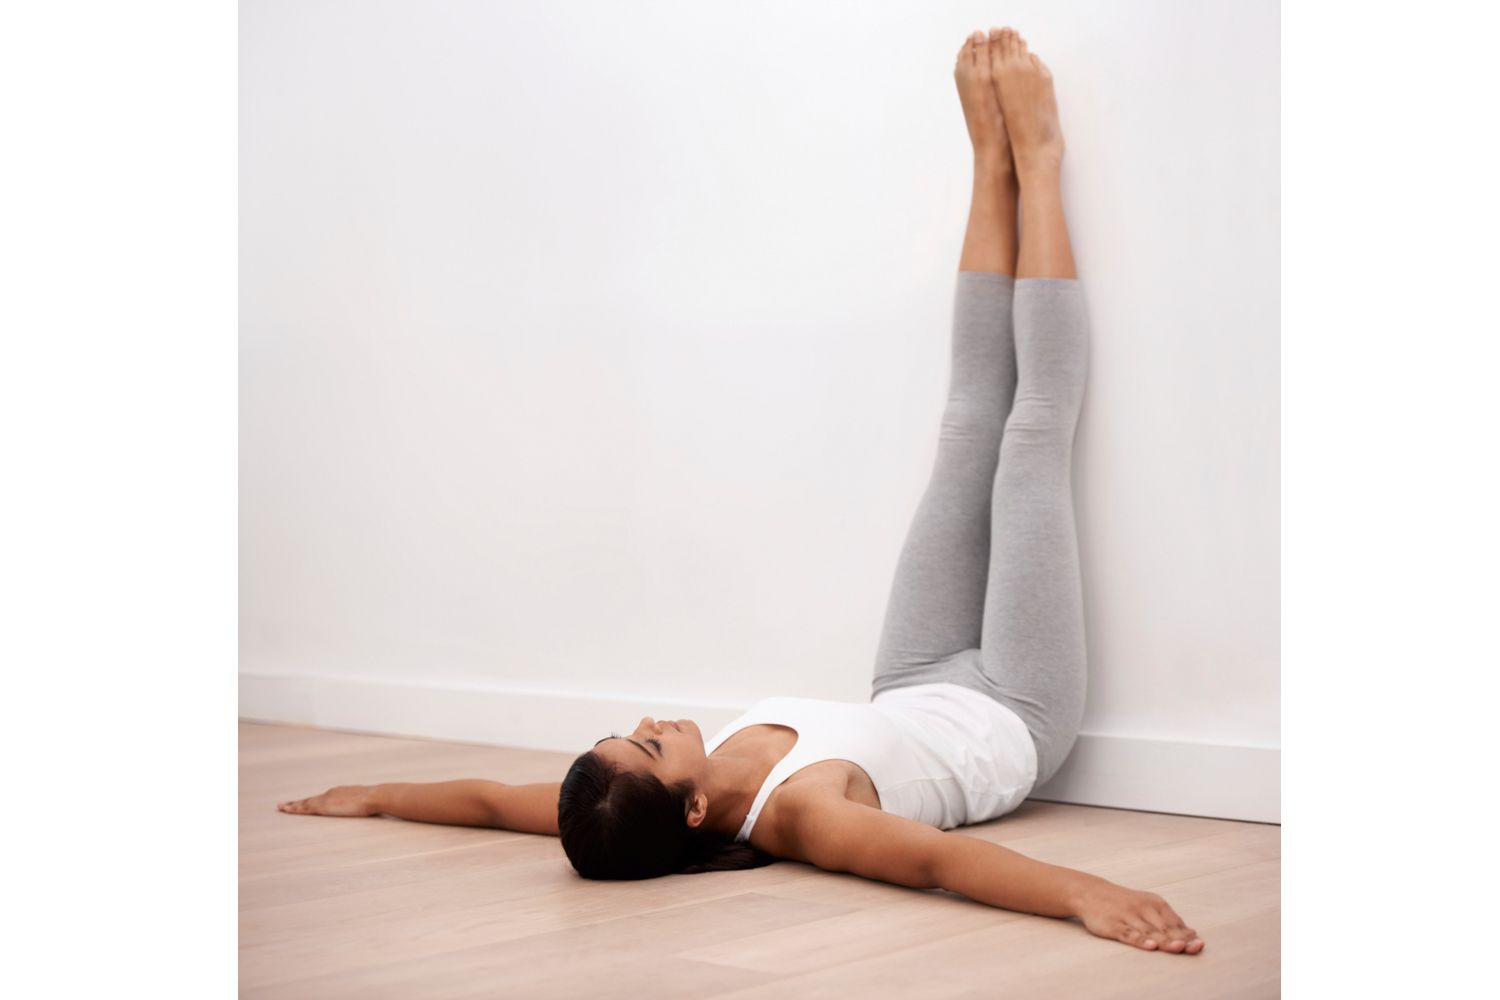 Legs Up the Wall for Yoga Cool Down